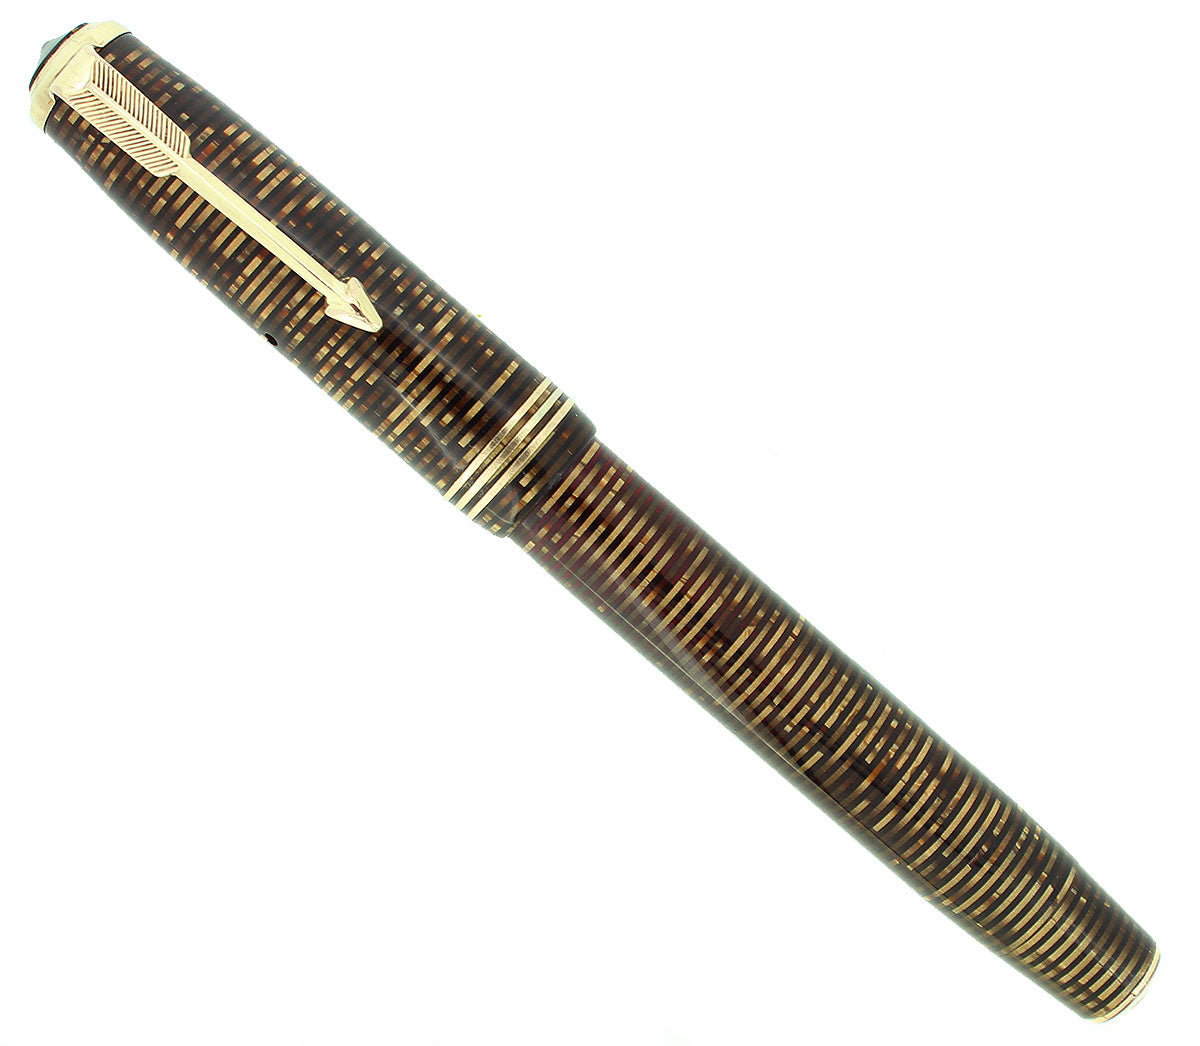 1937 PARKER GOLDEN PEARL VACUMATIC DOUBLE JEWEL STANDARD FOUNTAIN PEN RESTORED OFFERED BY ANTIQUE DIGGER